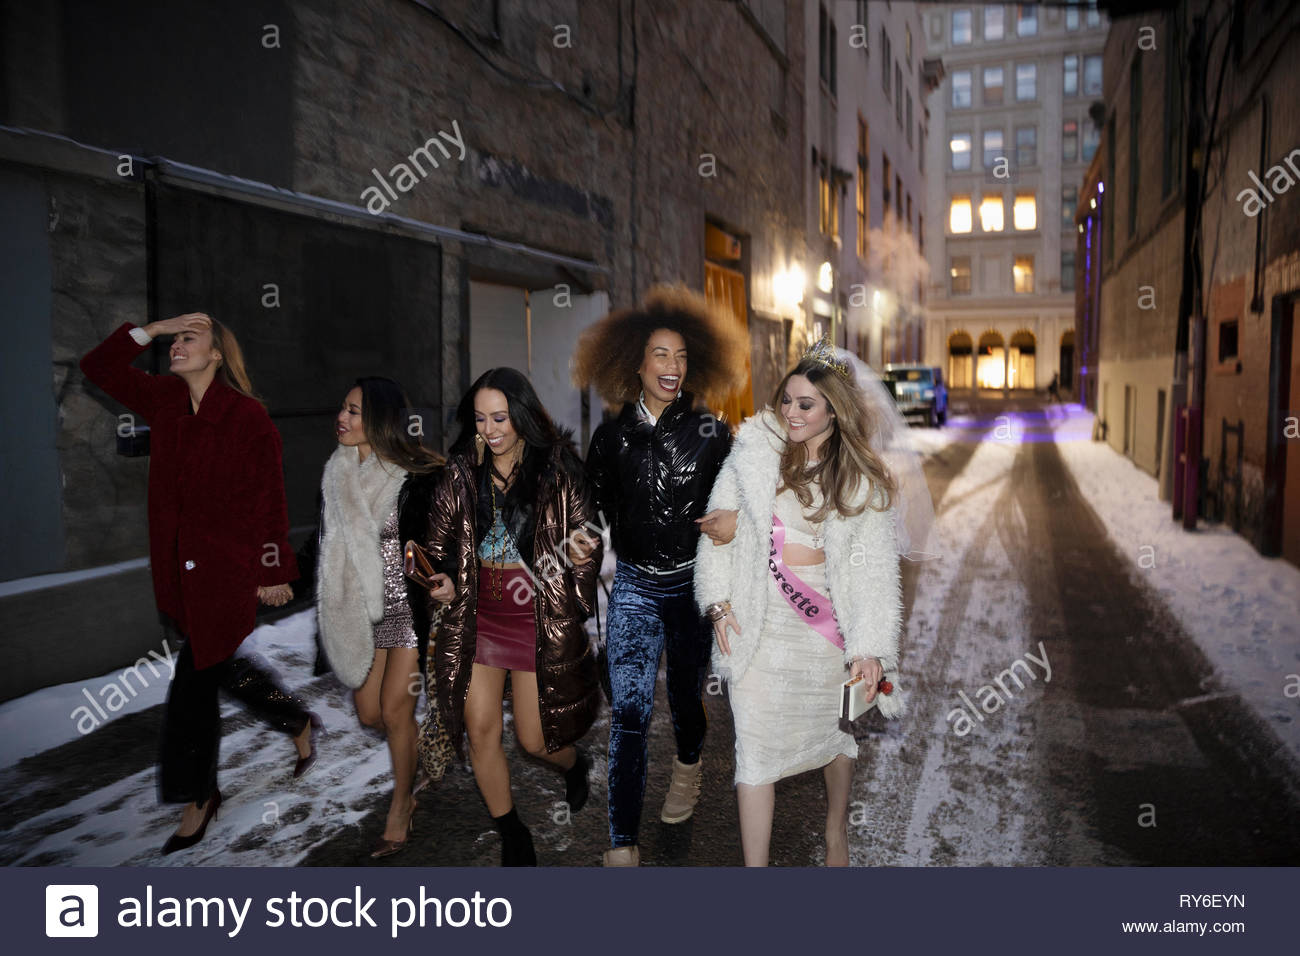 Bachelorette and friends walking along snowy urban alley at night - Stock Image